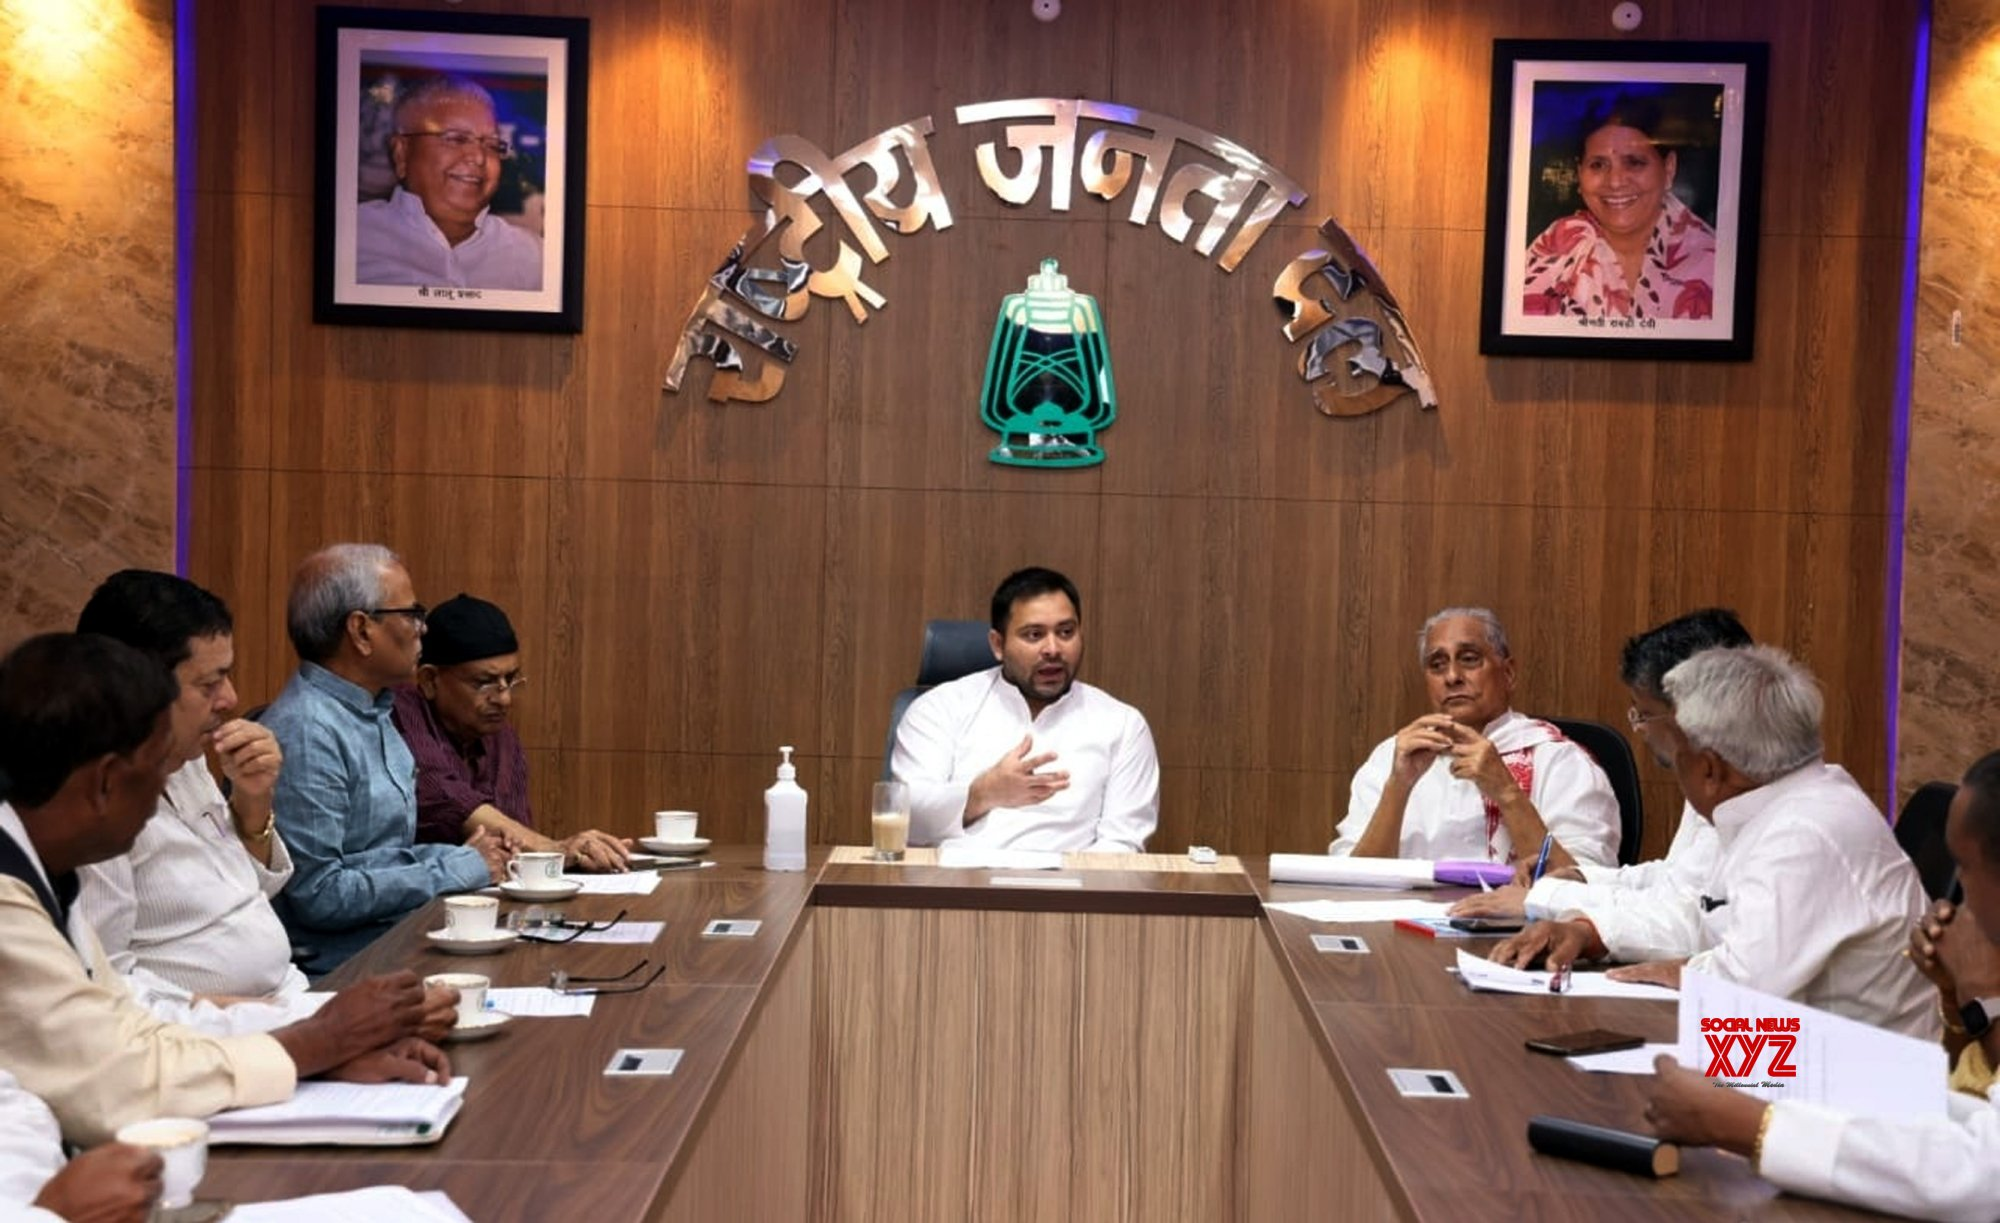 Patna: RJD LEADER TEJASHWI YADAV - ALONG WITH STATE PRESIDENT JAGDANAND SINGH ATTENDS A PARTY MEETING IN PANTA on Wednesday, September 15, 2021 #Gallery